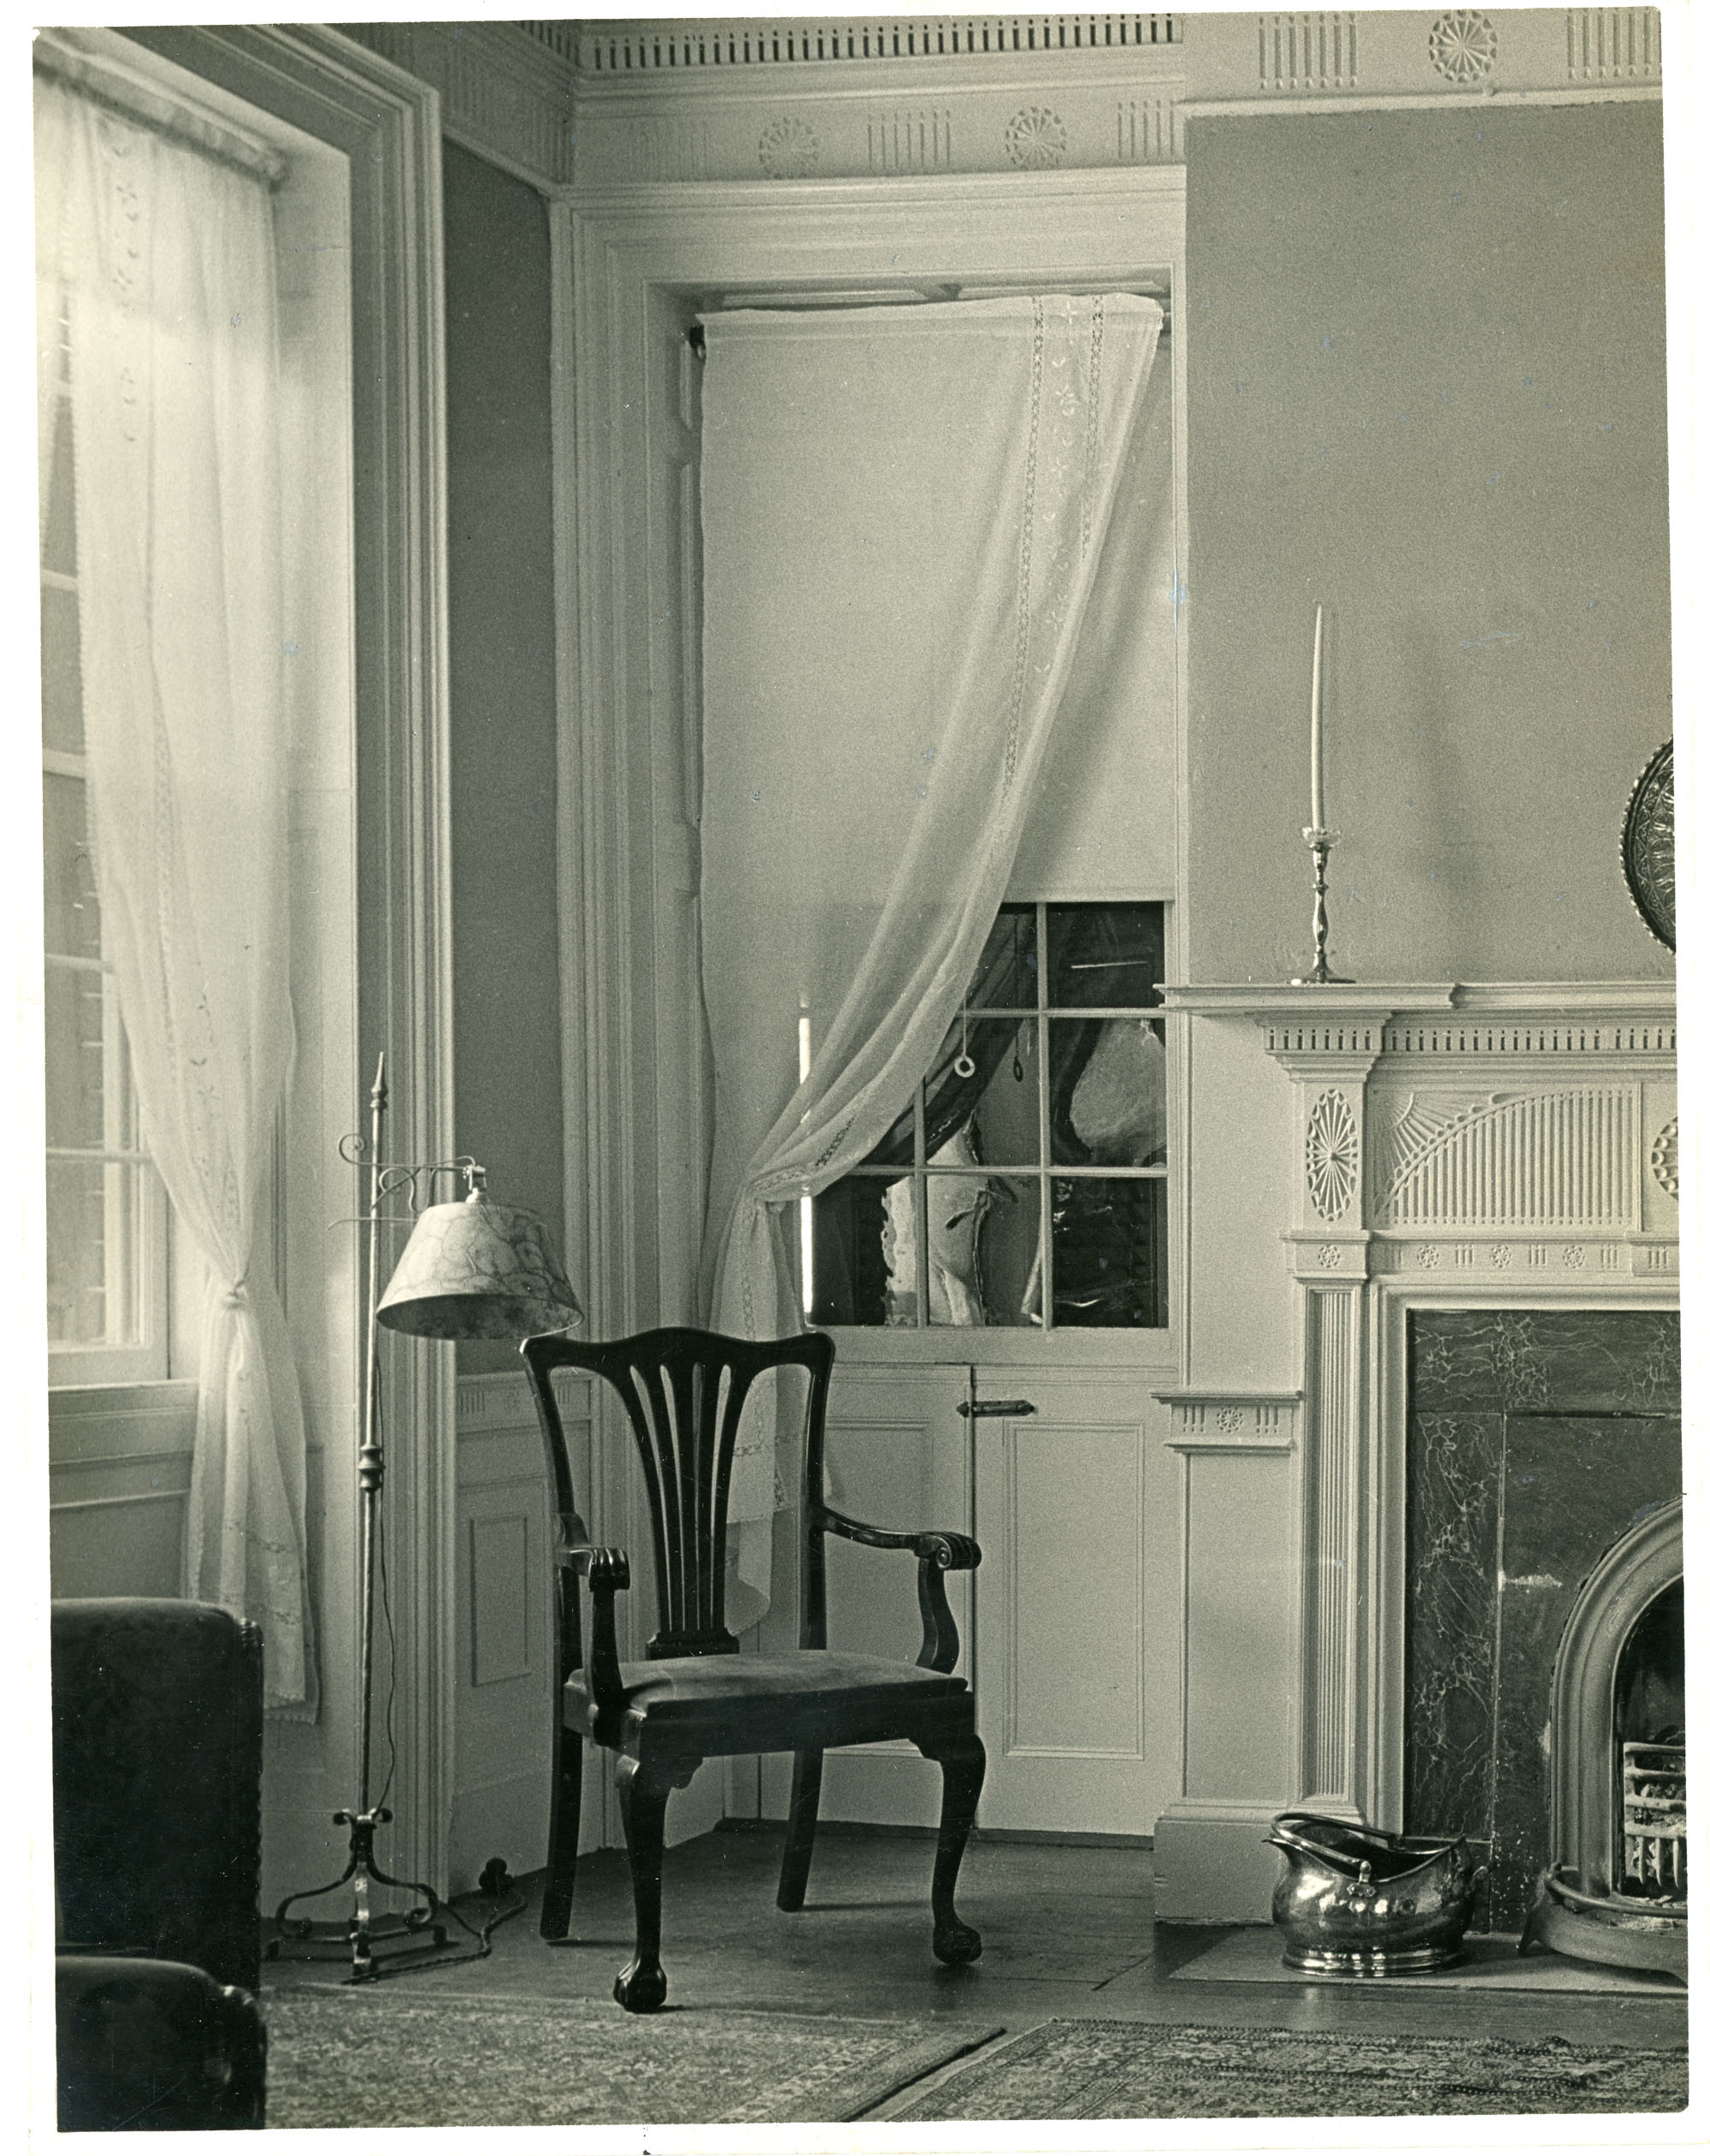 Brewton-Salter House, Double-Hung Window with Doors West Wall, Second Floor Drawing Room